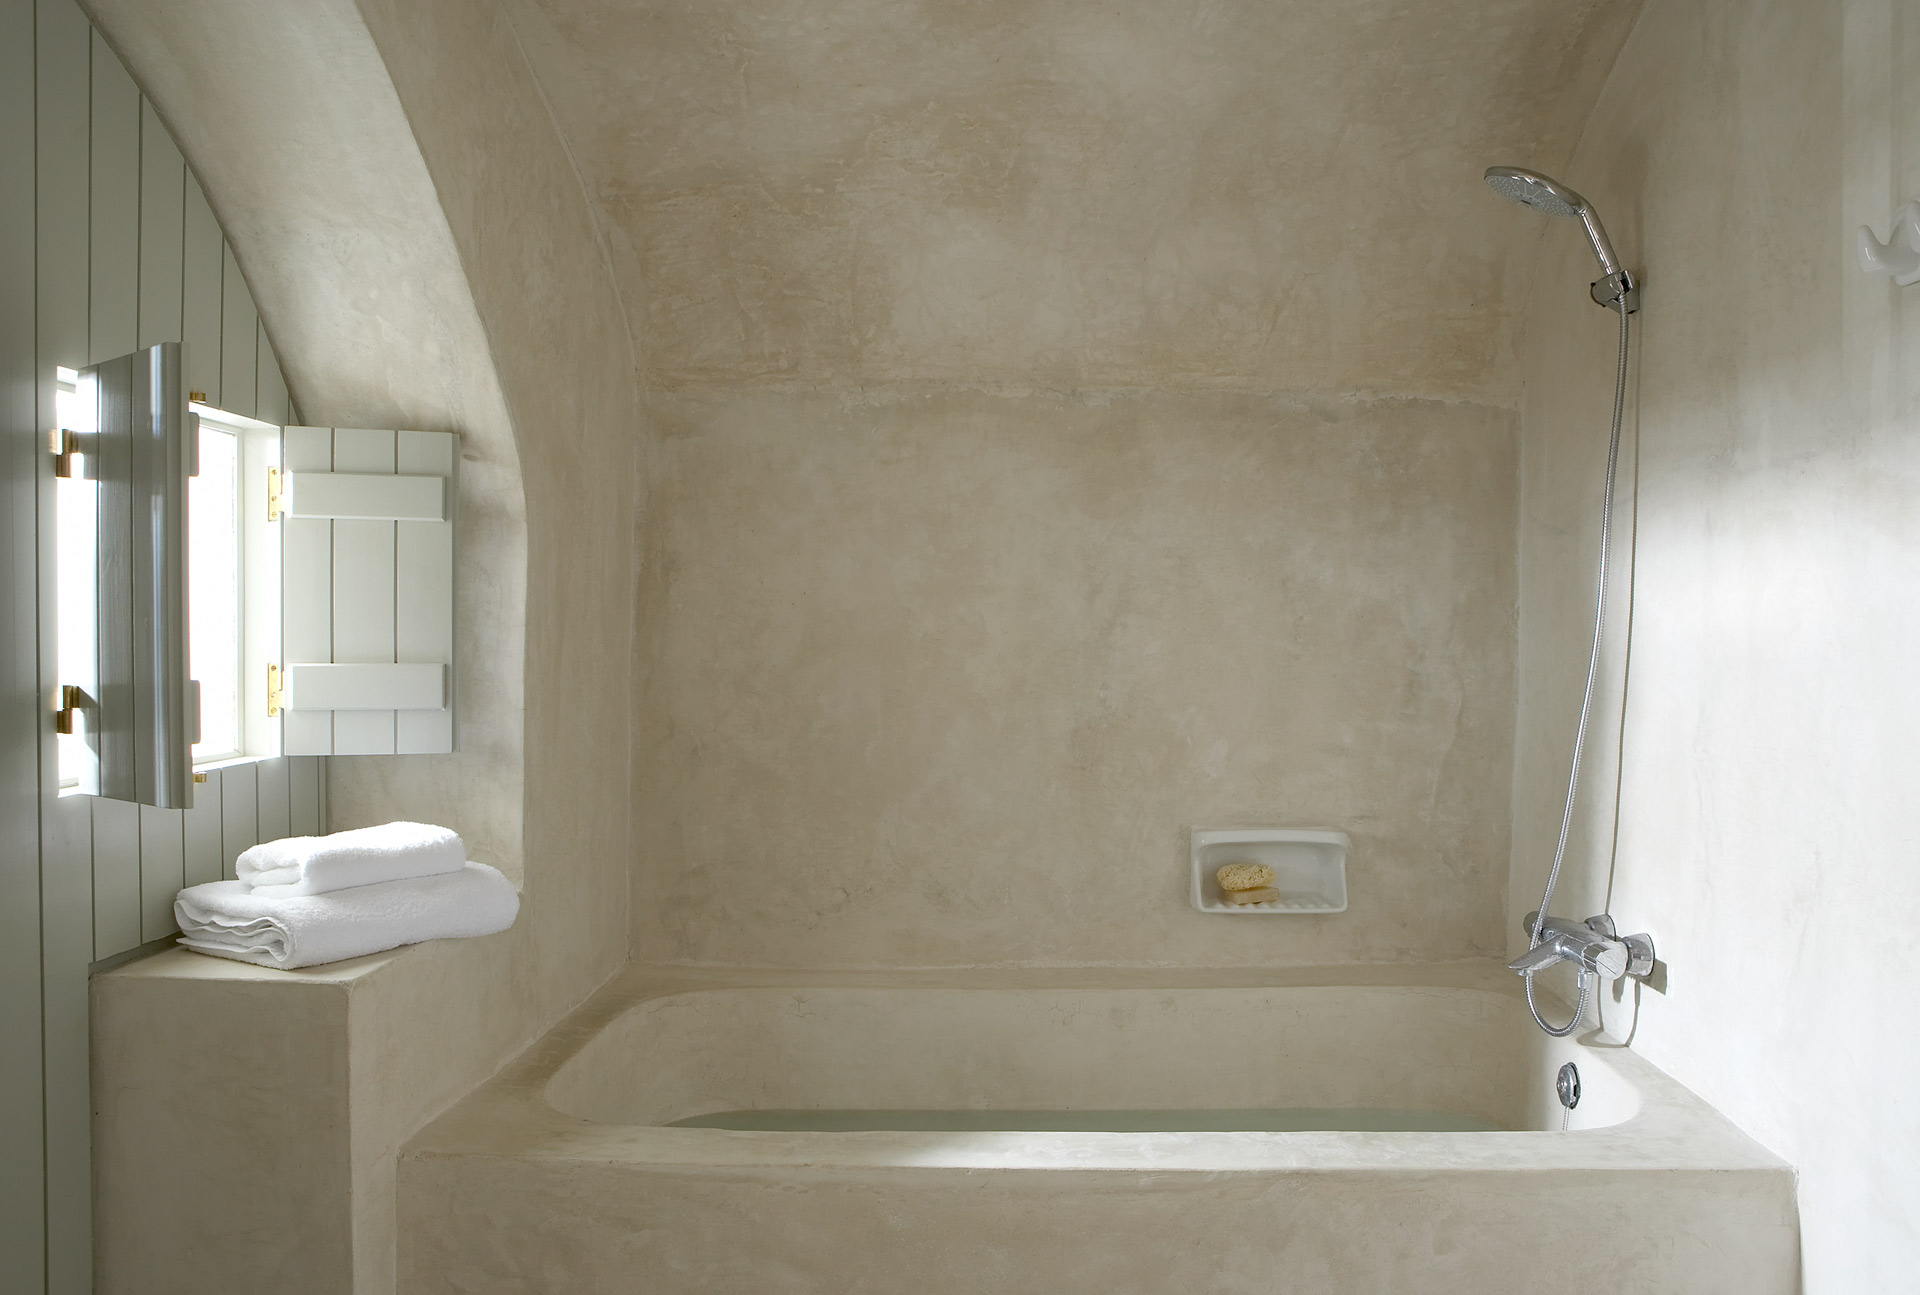 Villa fabrica santorini bathroom from the poolside boutique hotels and villa with pool for - Deco badkamer hout ...